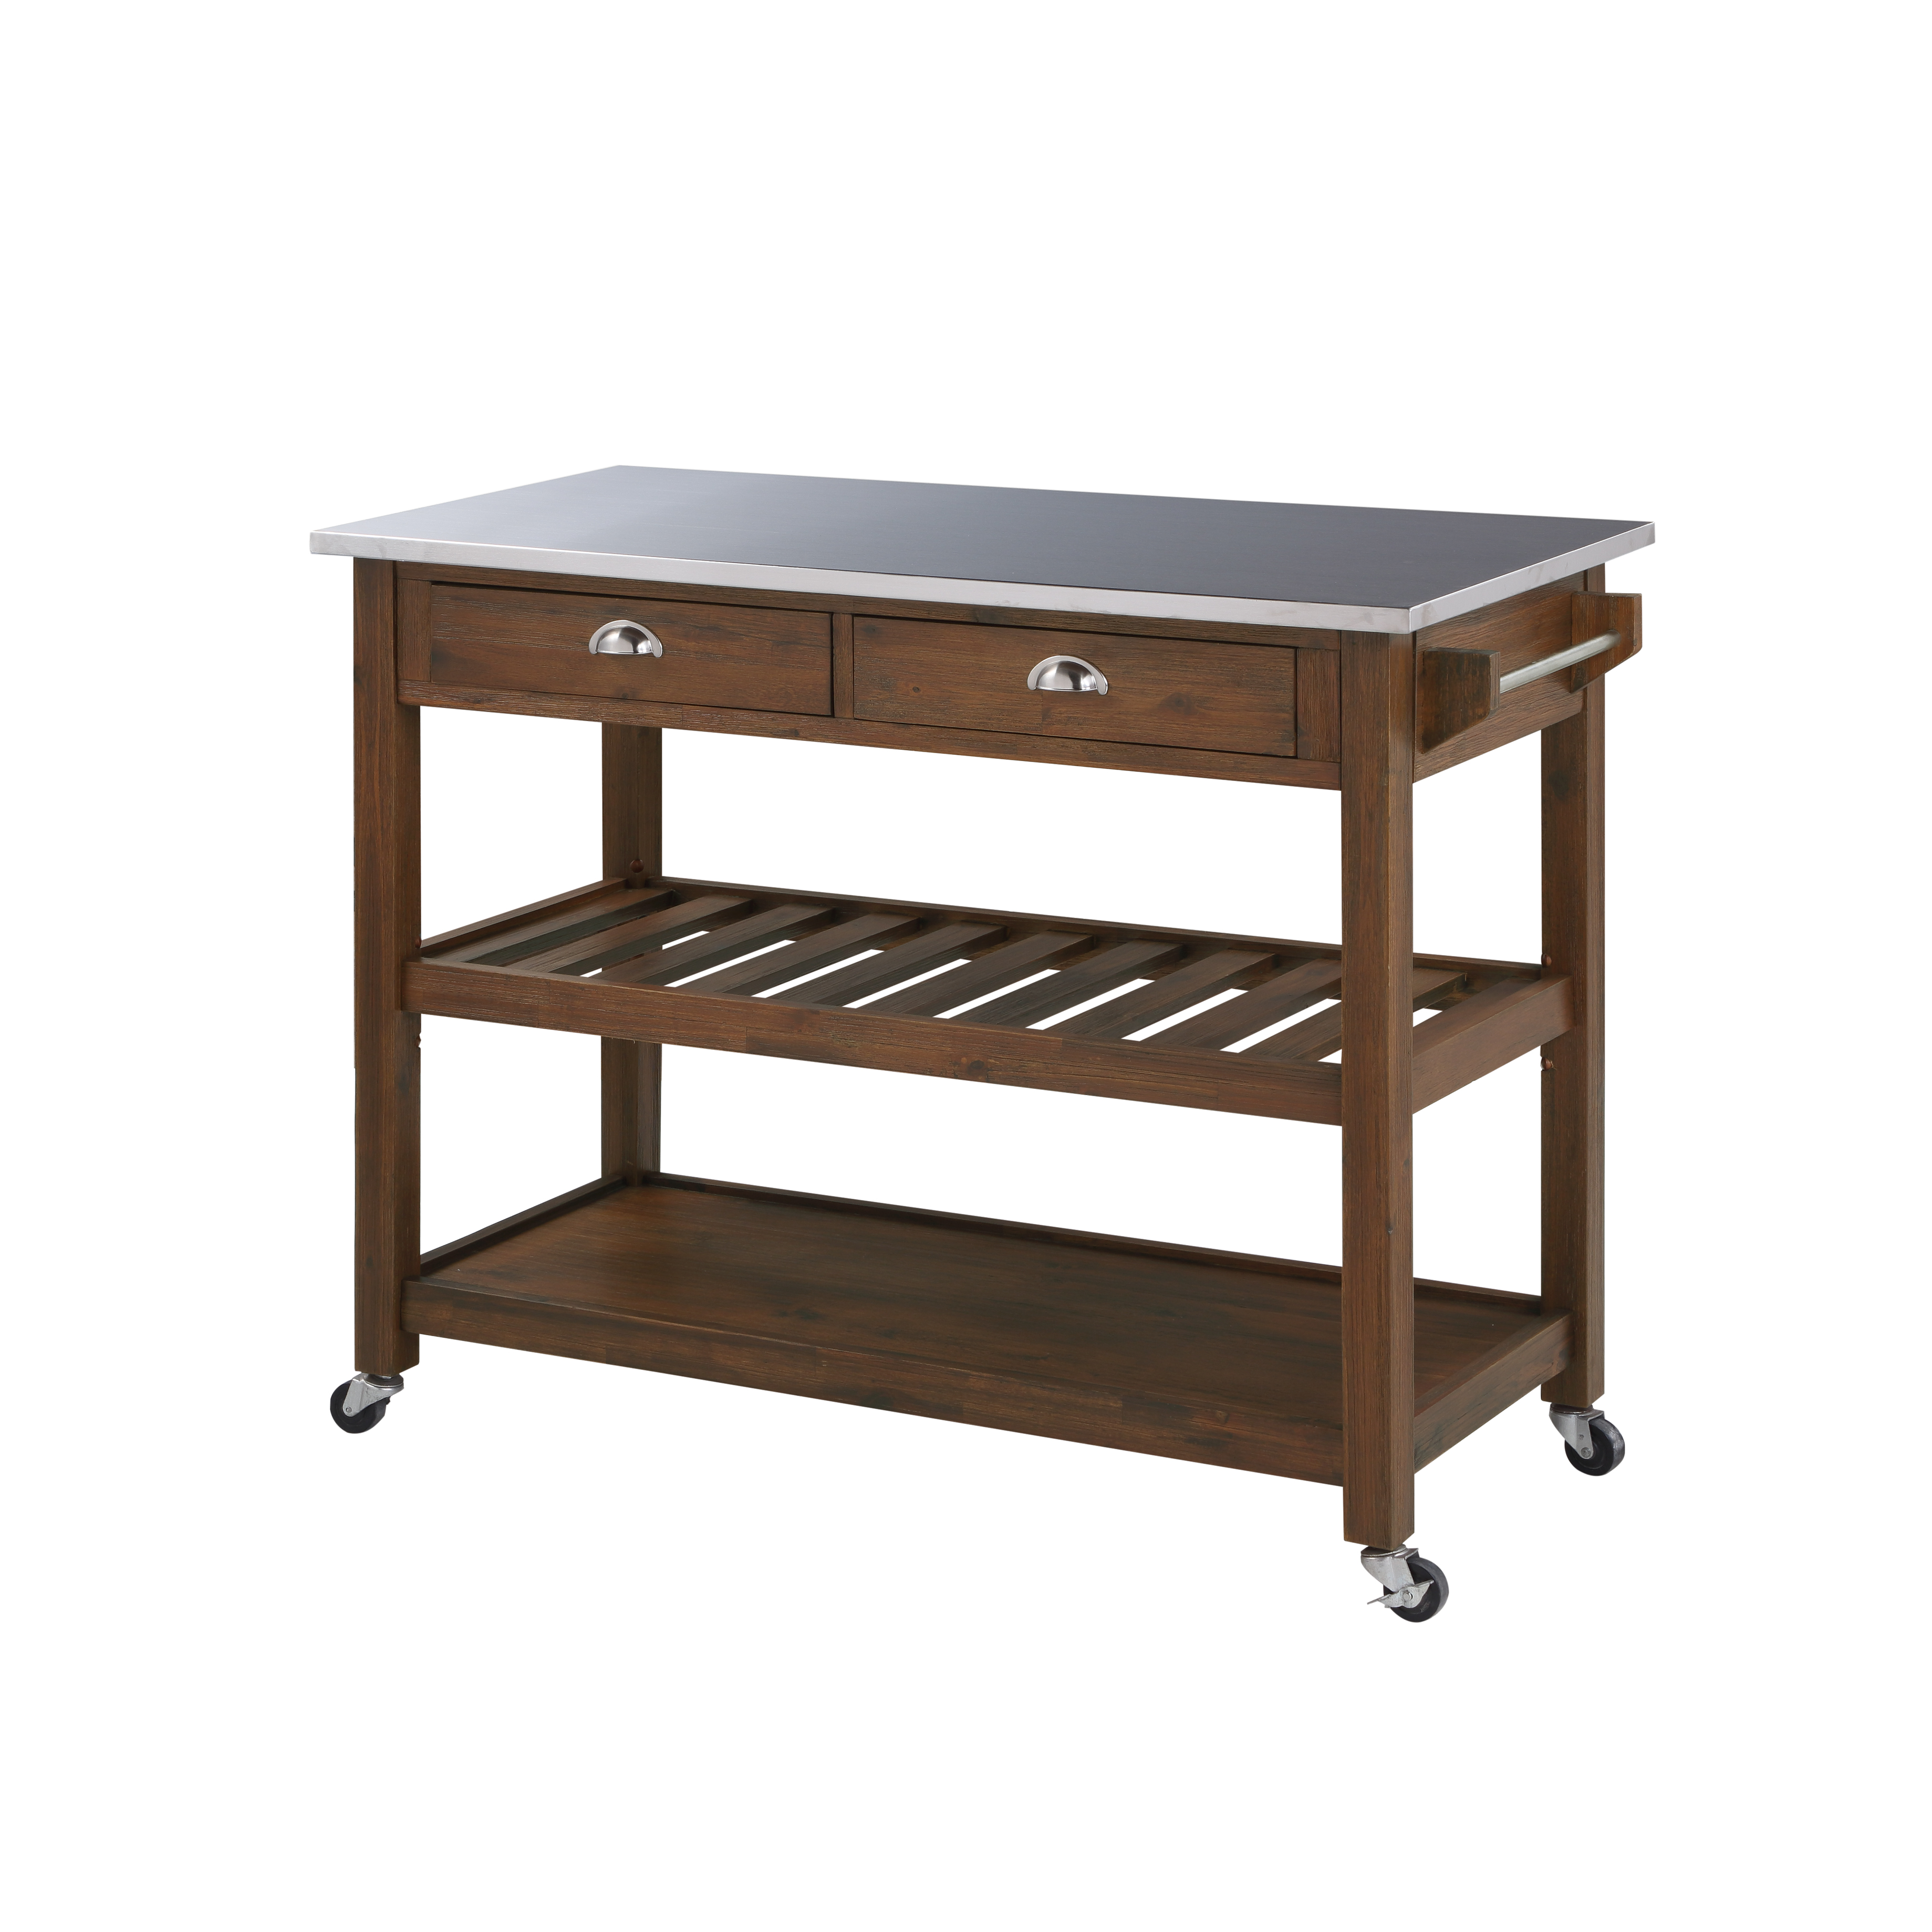 Sonoma Wire-Brush Rustic-Finish Kitchen Cart